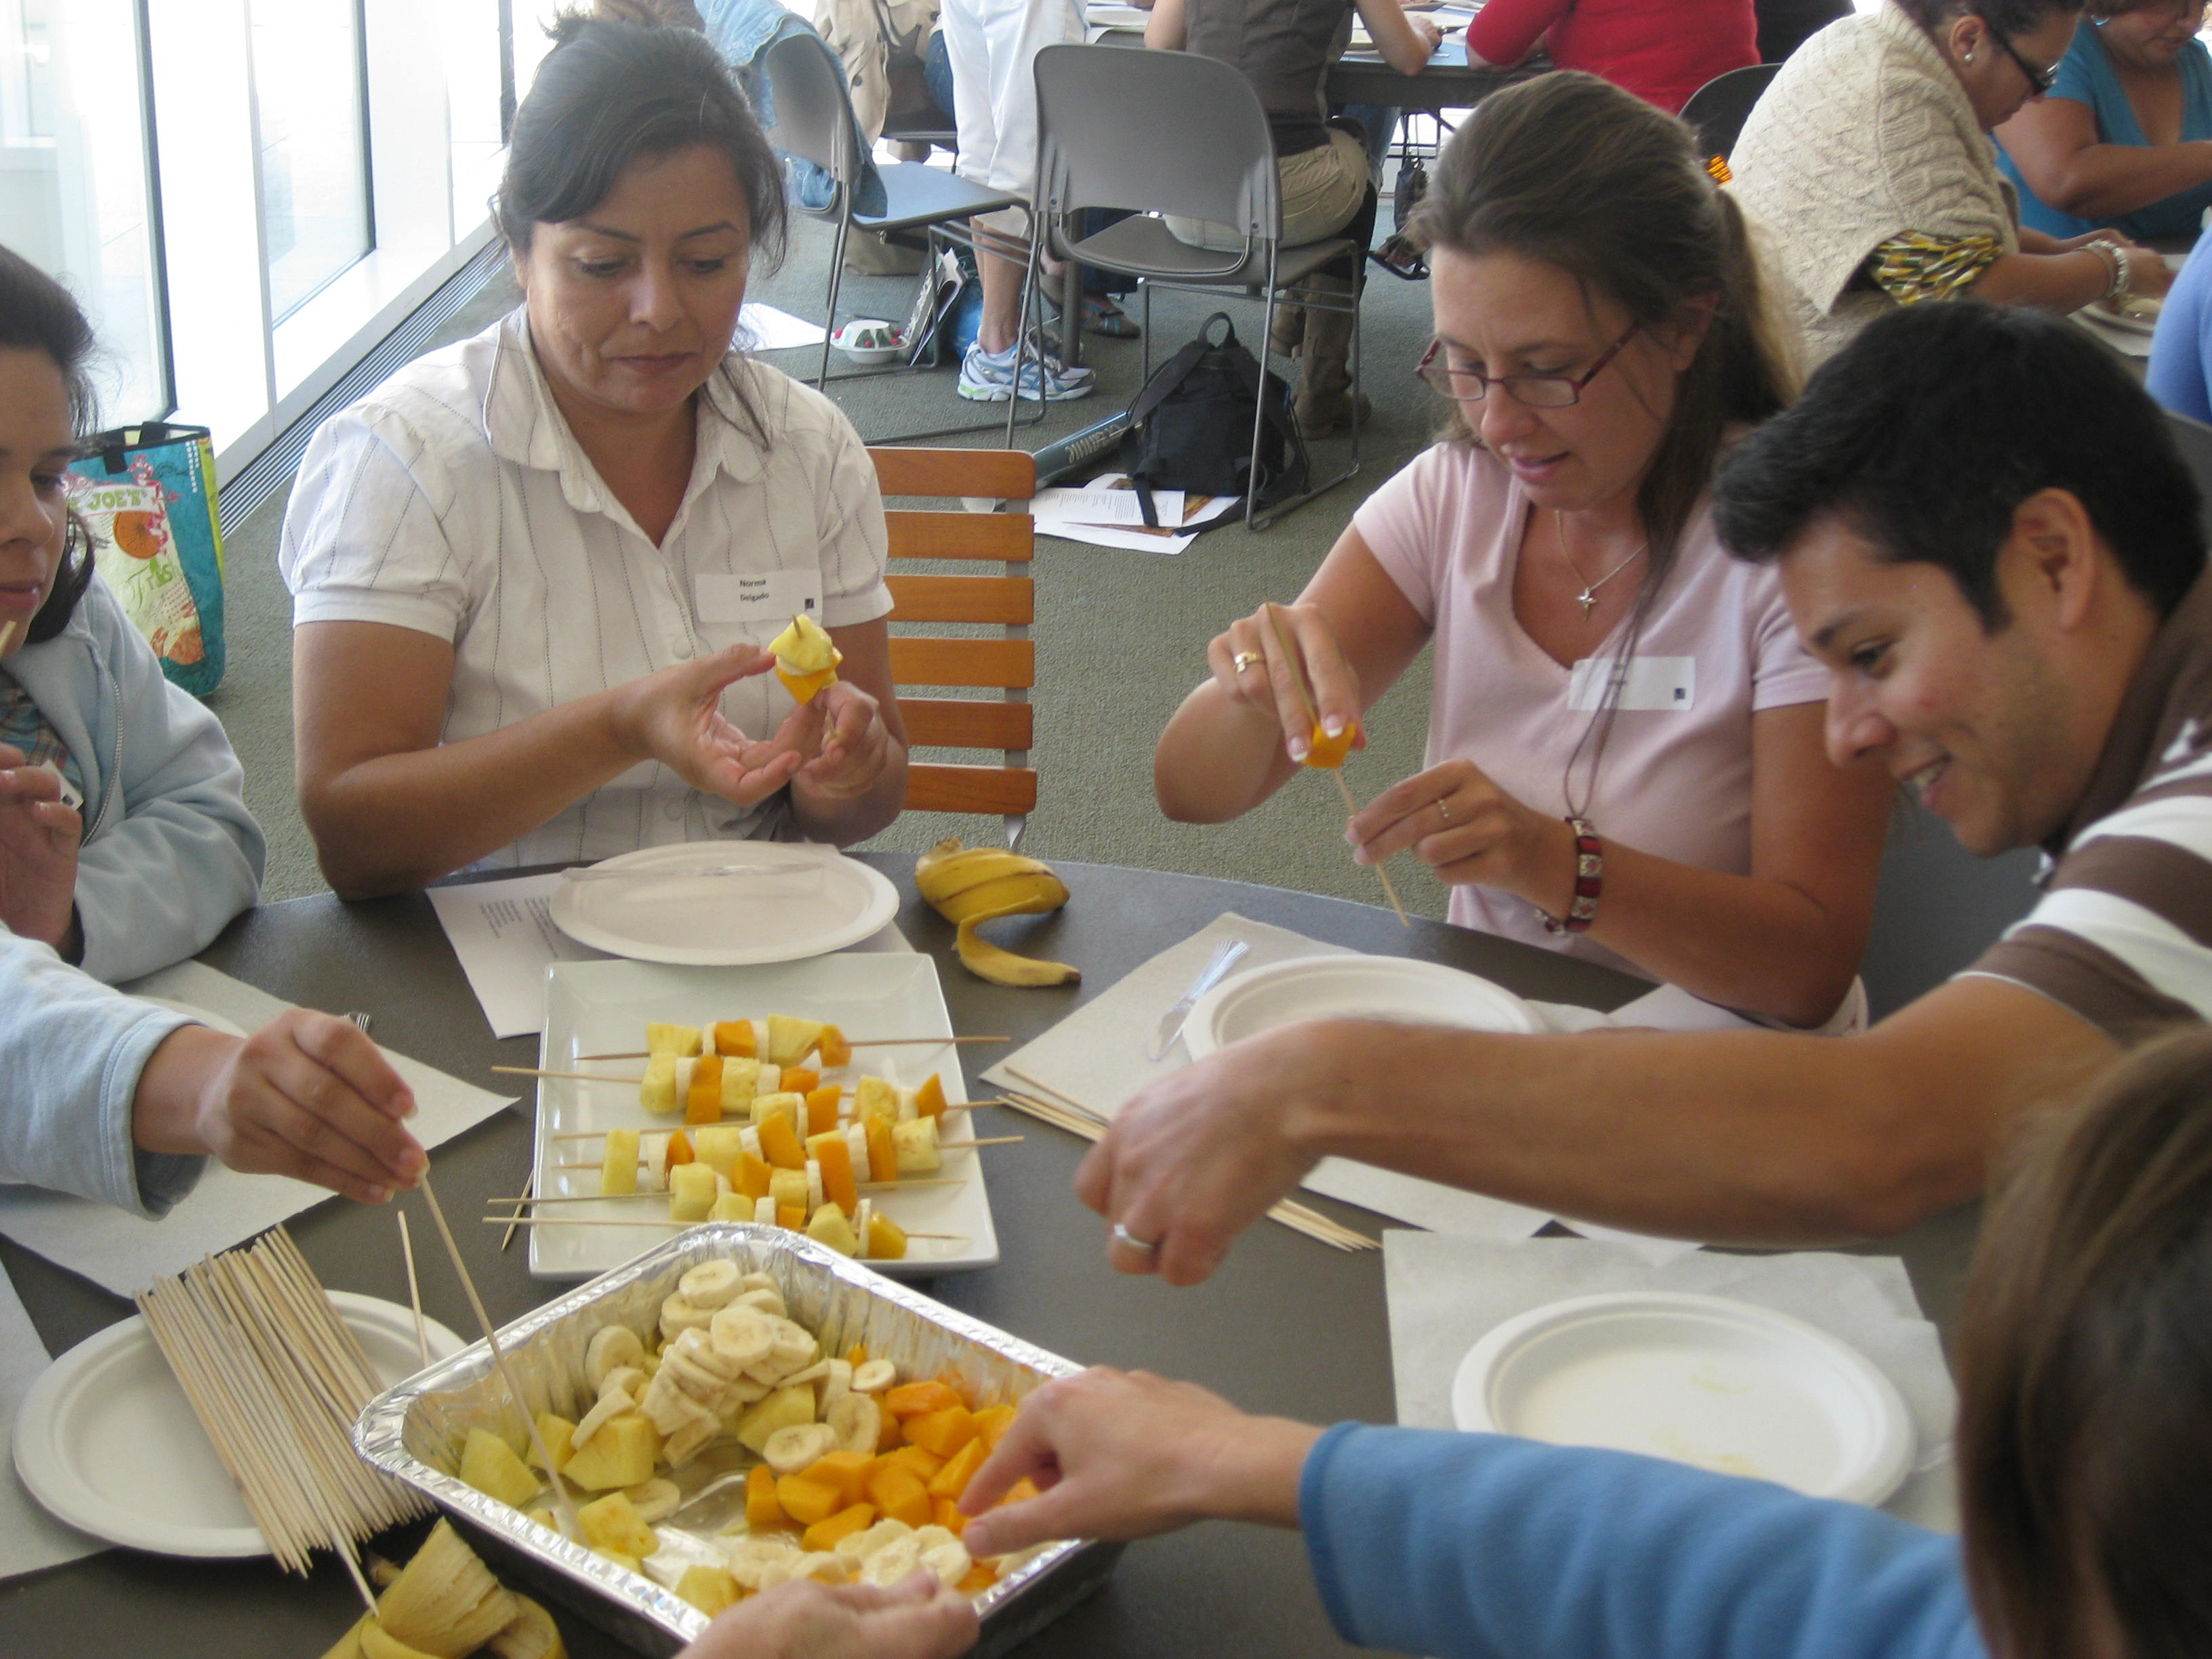 Teachers had a great time turning pineapple skewers into sculptural creations.